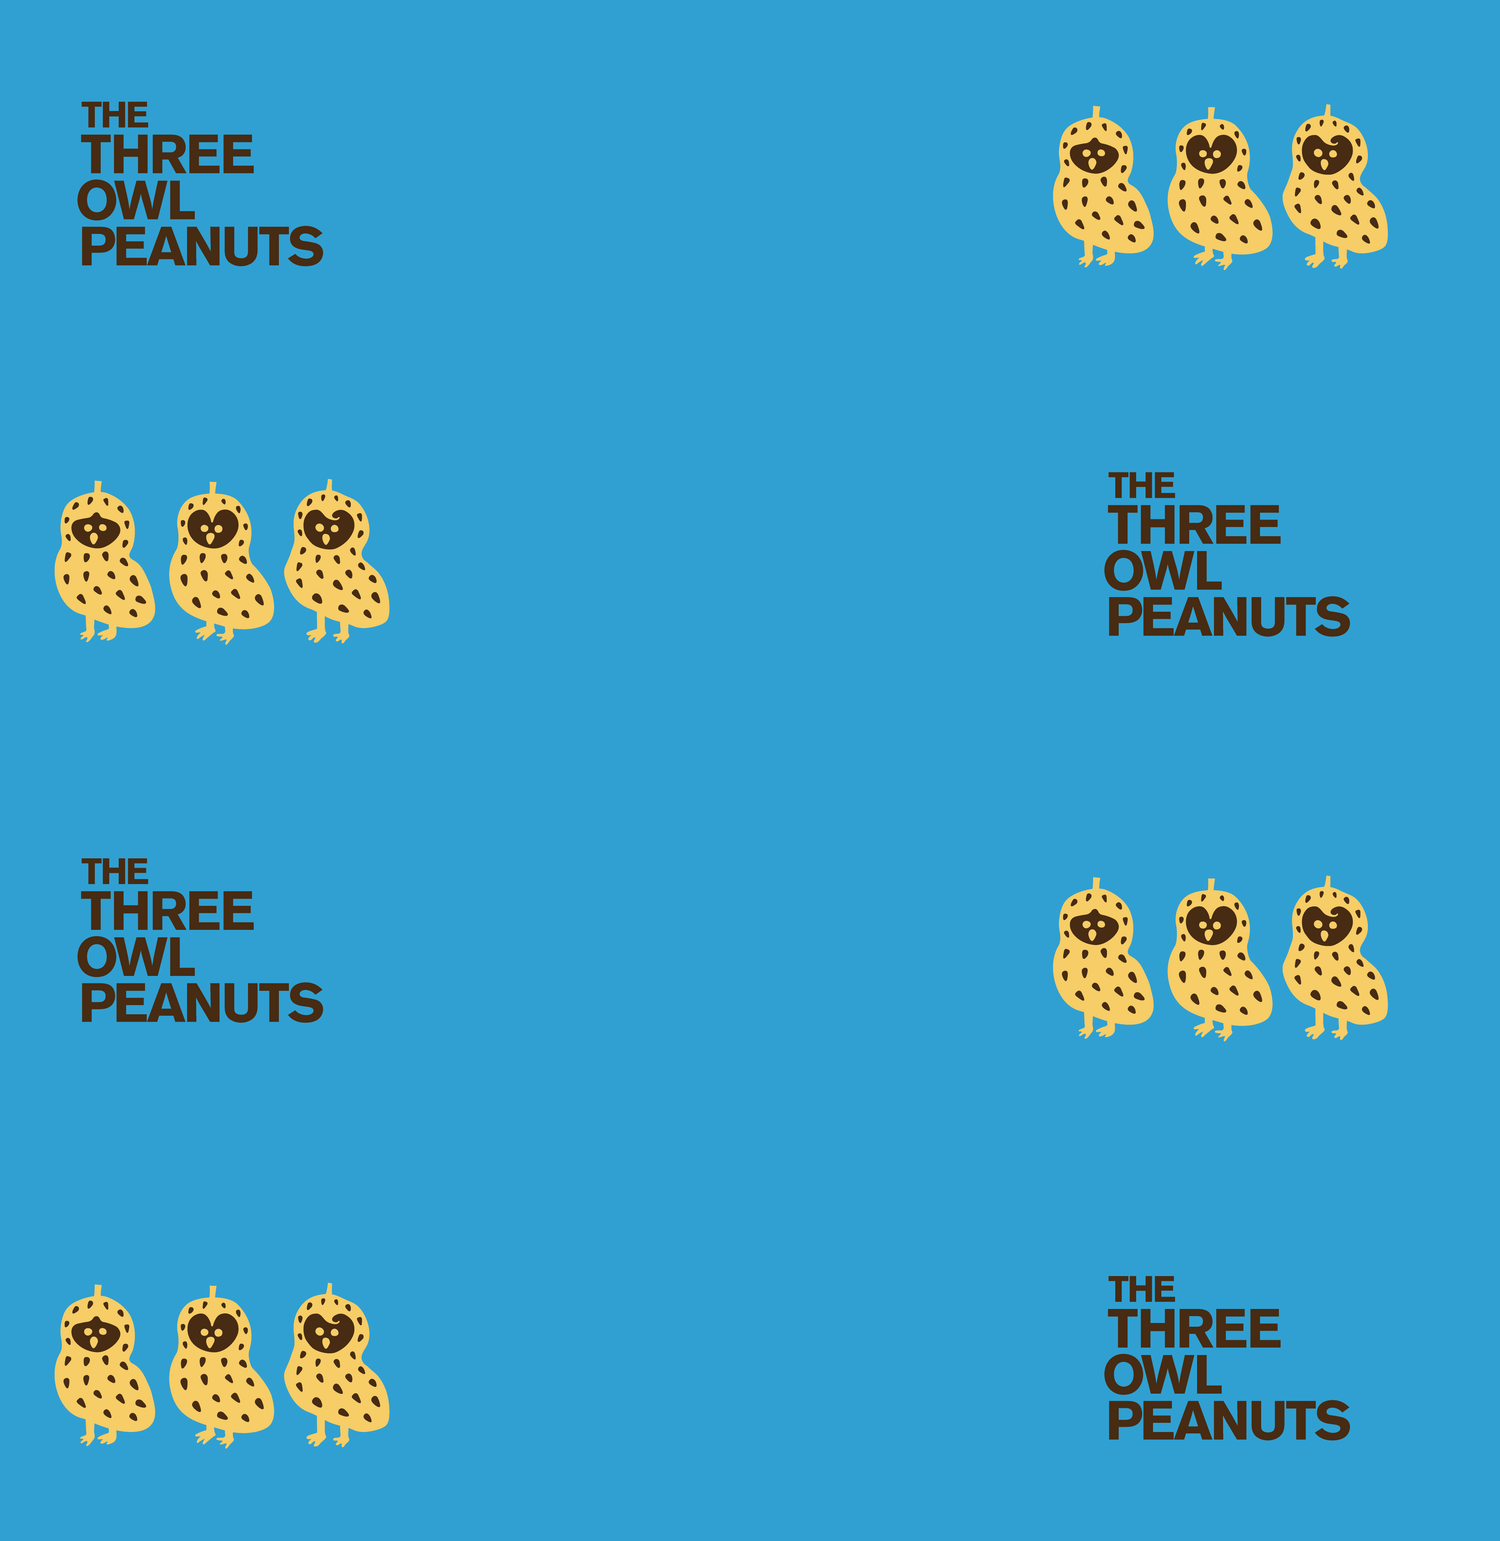 THE THREE OWL PEANUTS